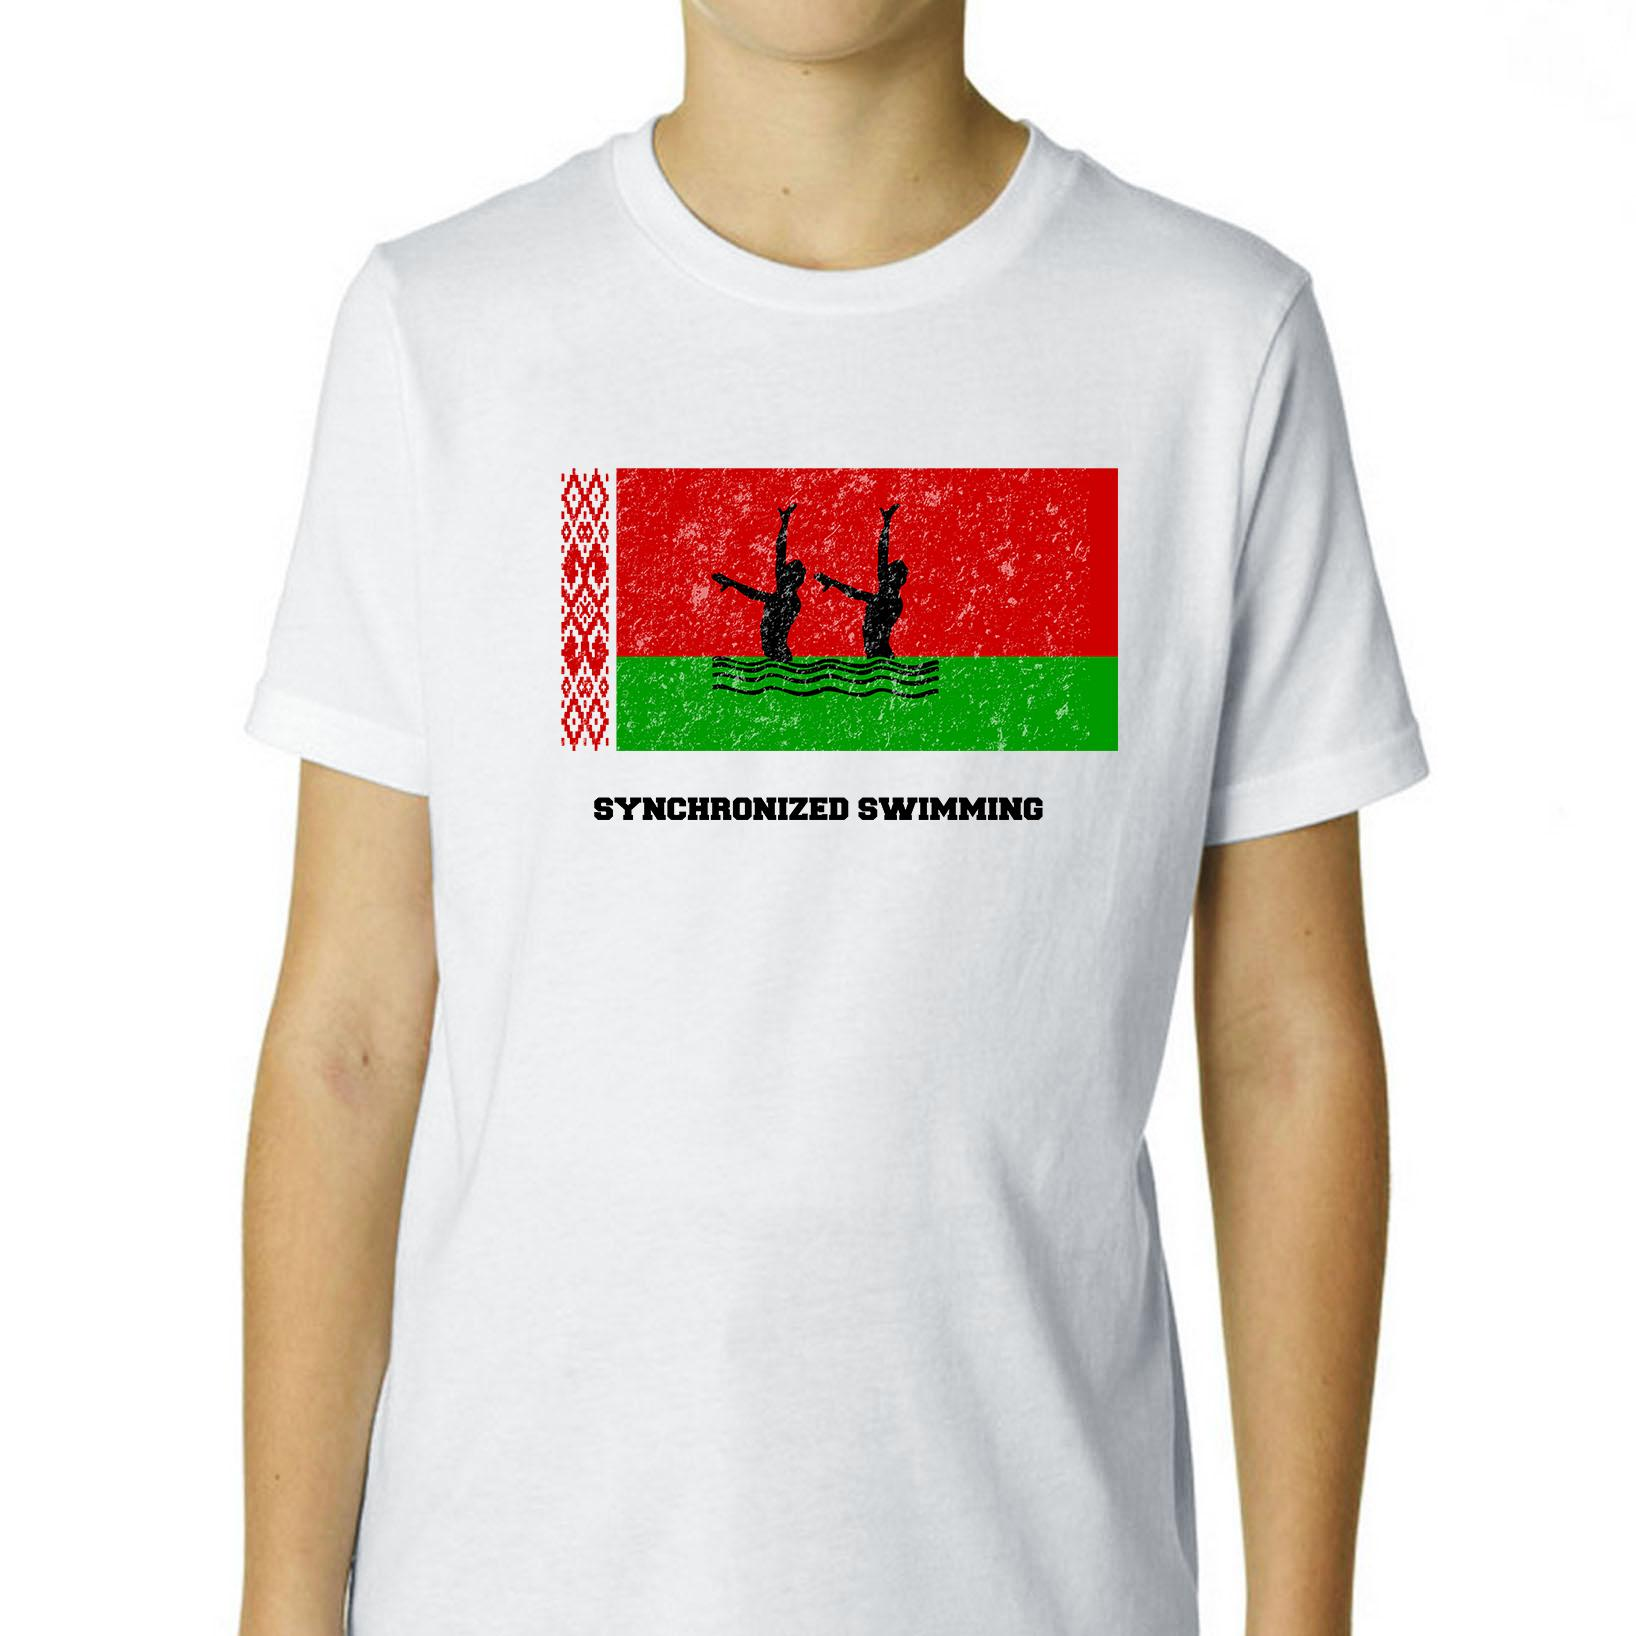 Belarus - Olympic - Synchronized Swimming - Flag - Silhouette Boy's Cotton Youth T-Shirt